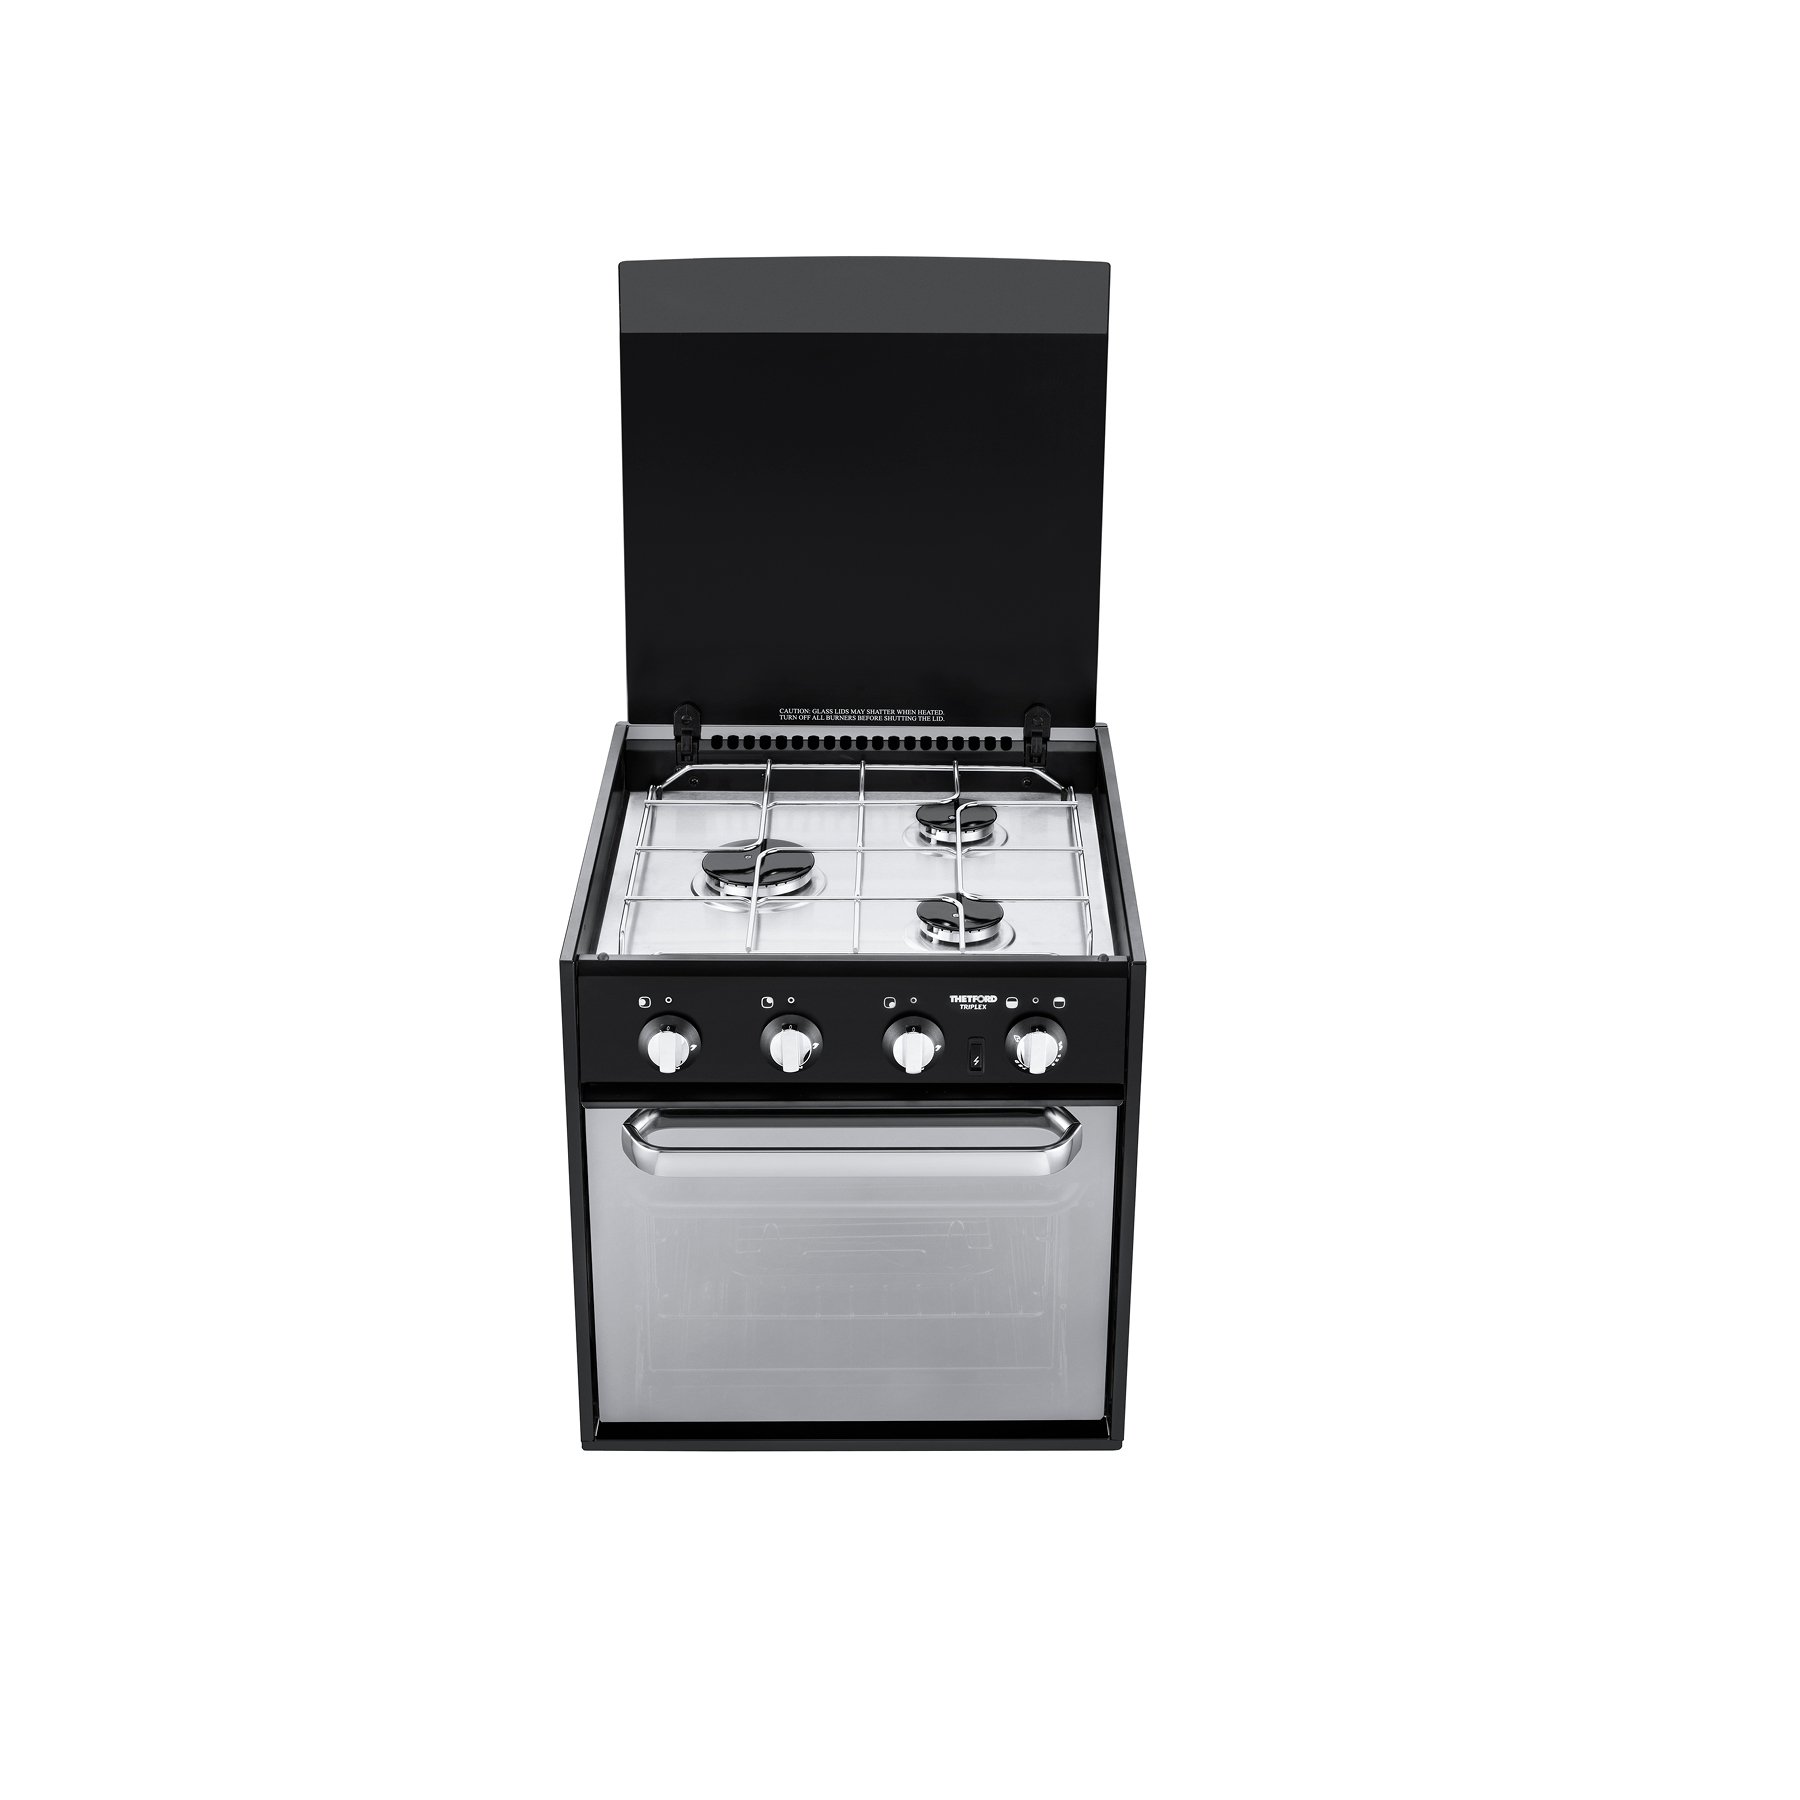 TRIPLEX MK3 COMPACT COMBINATION COOKER- GAS ONLY W/ RAPID BURNER